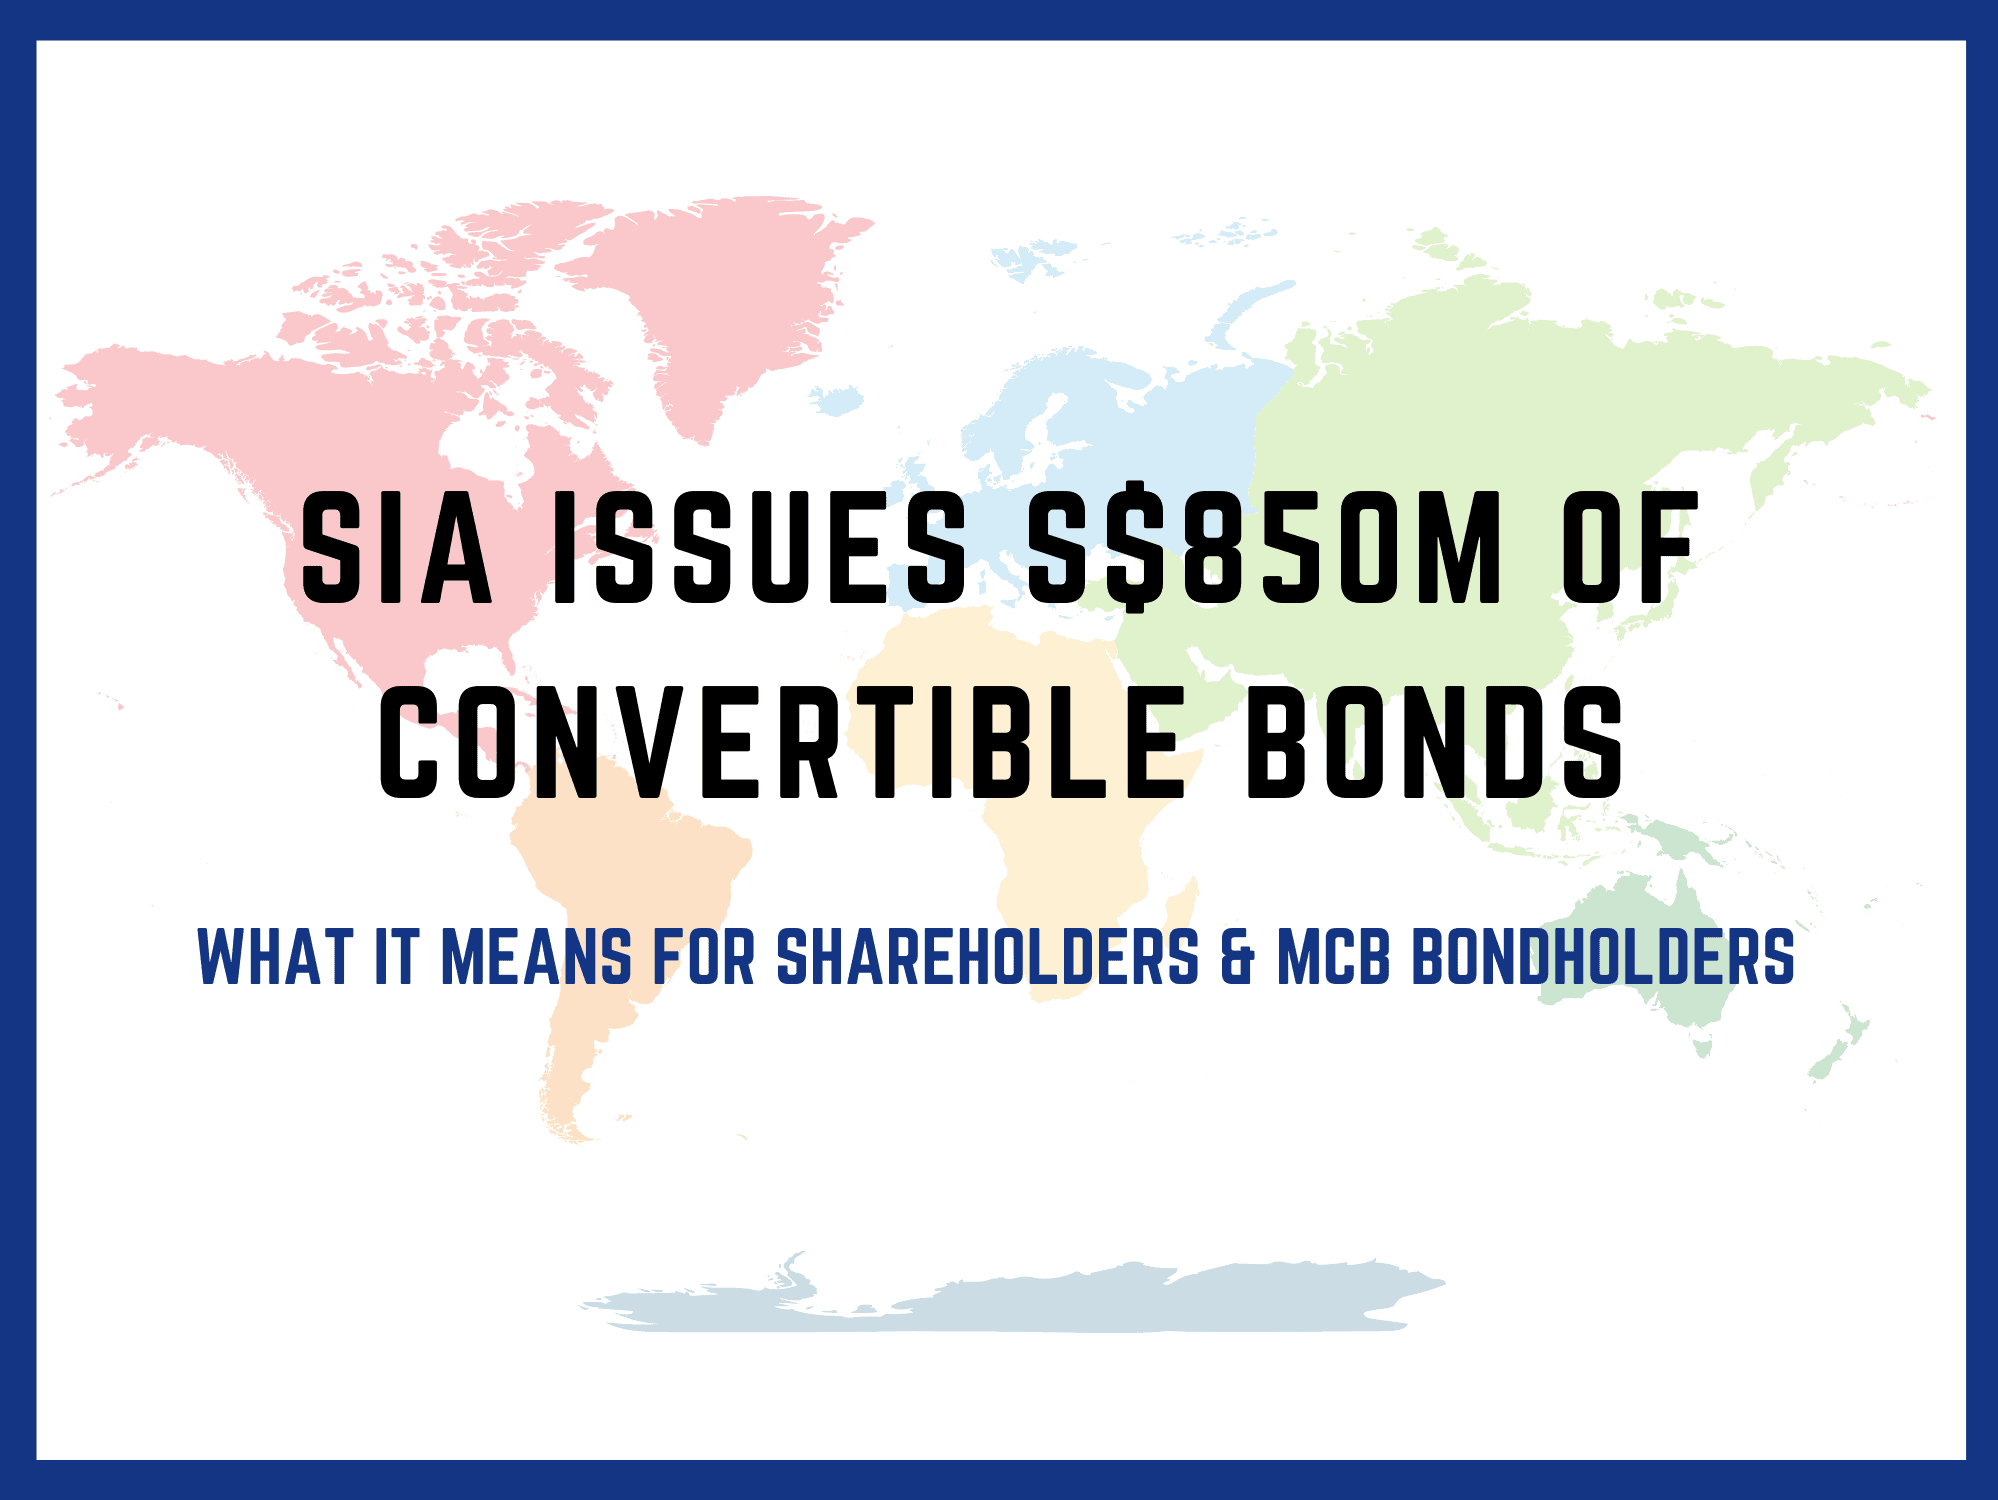 SIA Issues S$850m of Convertible Bonds: What does it mean for shareholders and MCB bondholders?